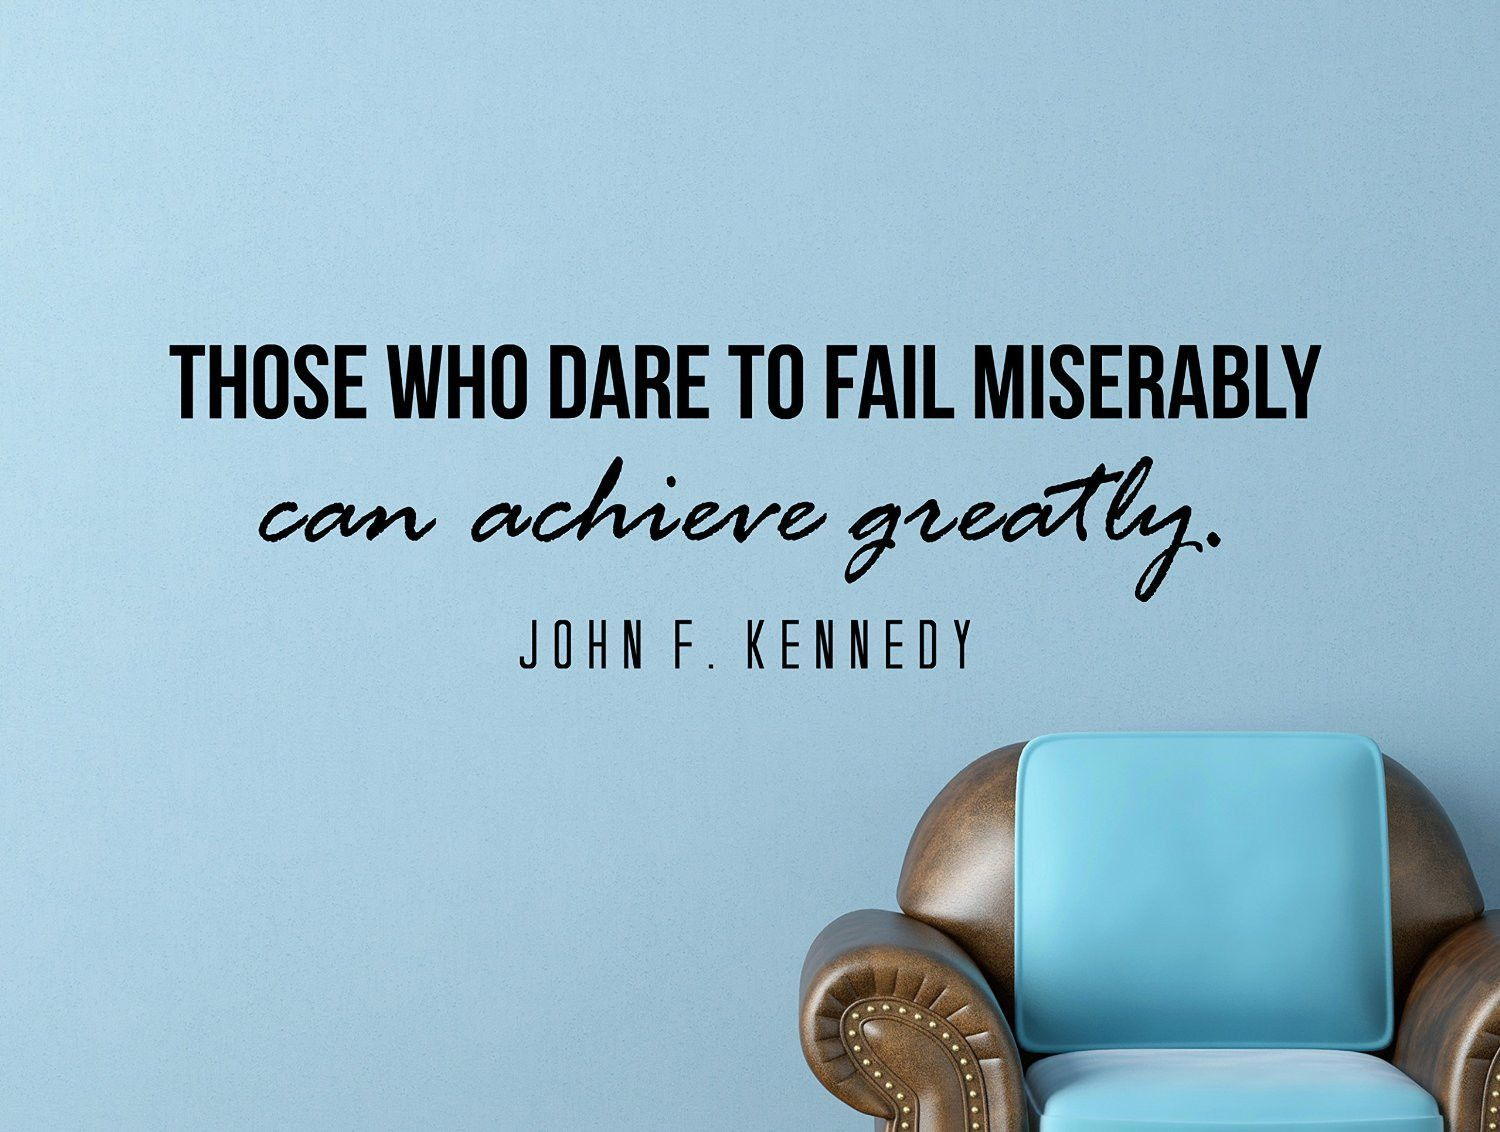 Dare Quotes John Fkennedy Quote Inspirational Motivational Wall Decal Home